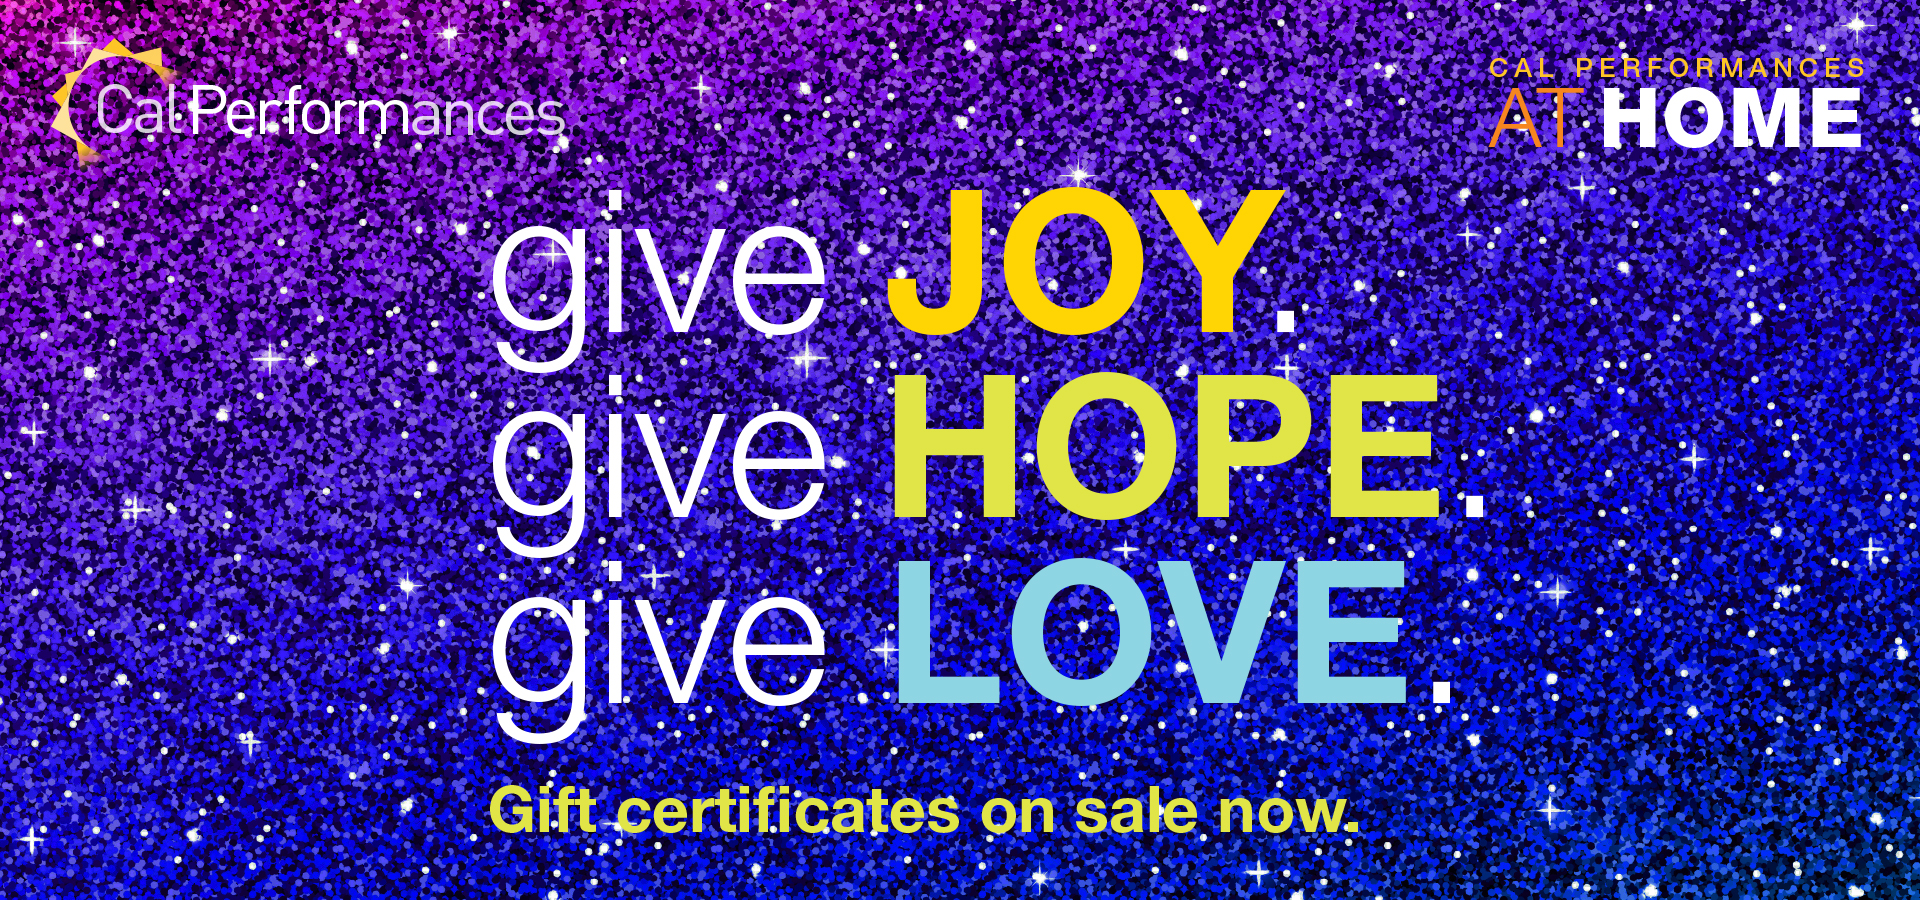 Give Joy. Give hope. Give Love.